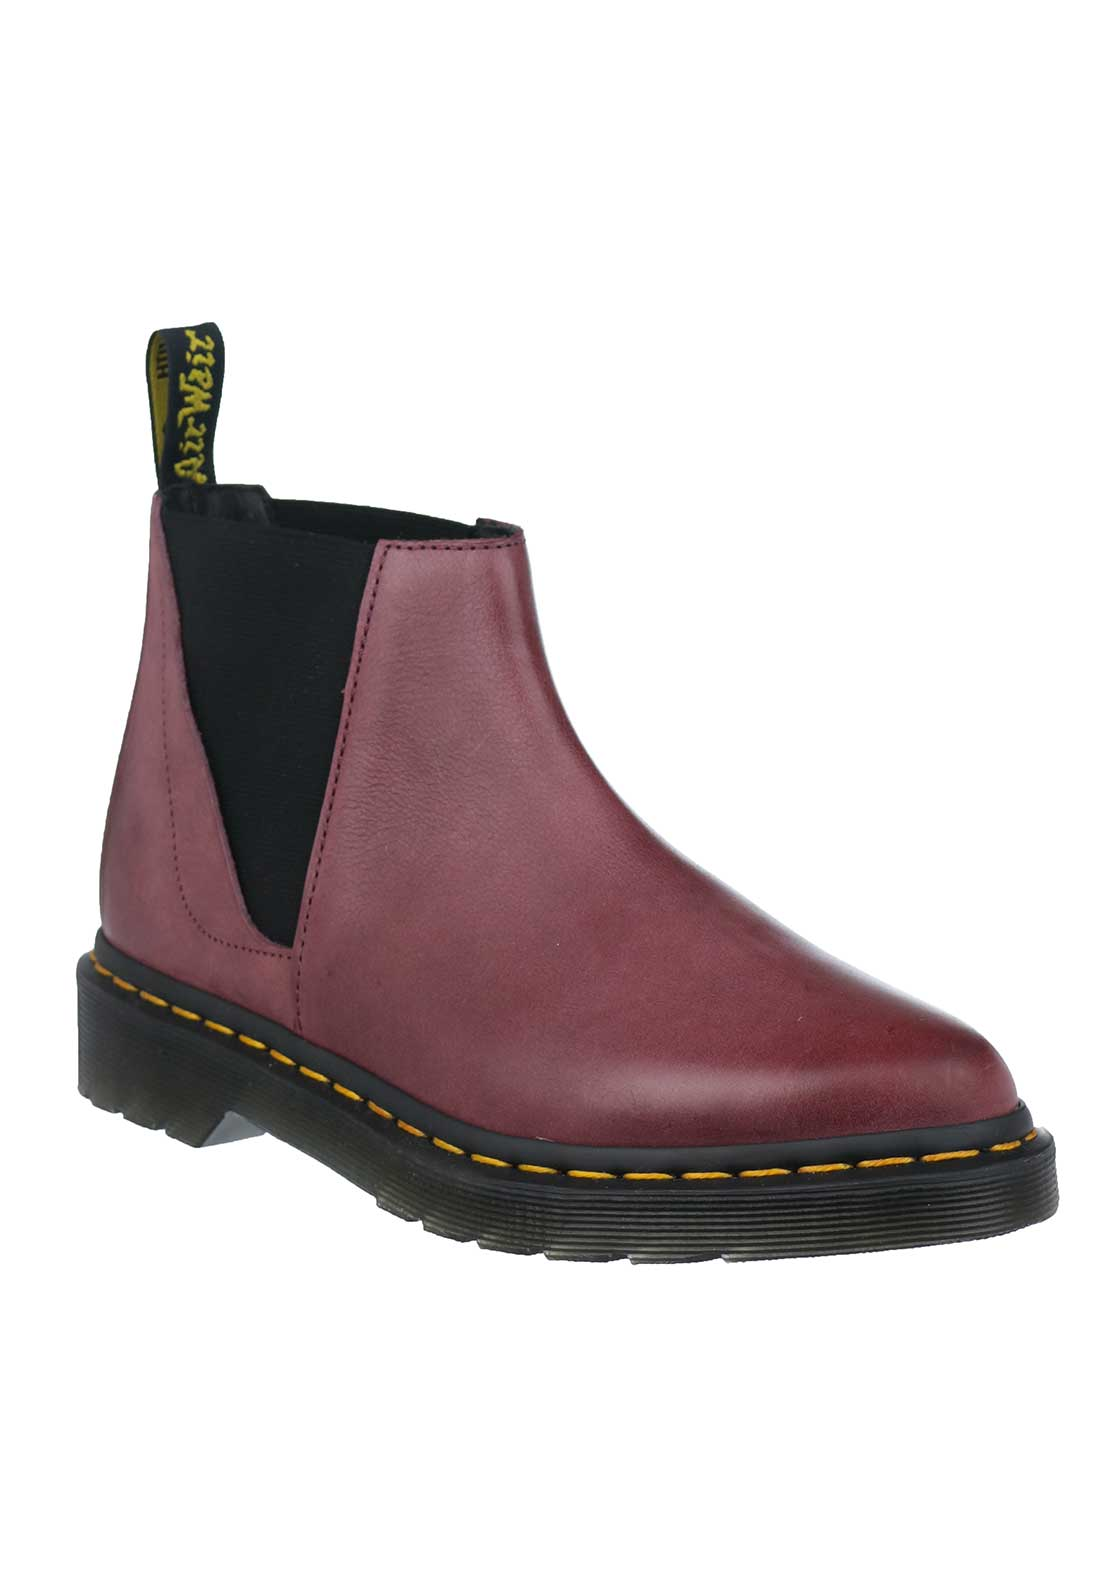 Dr. Martens Womens Bianca Leather Boots, Wine